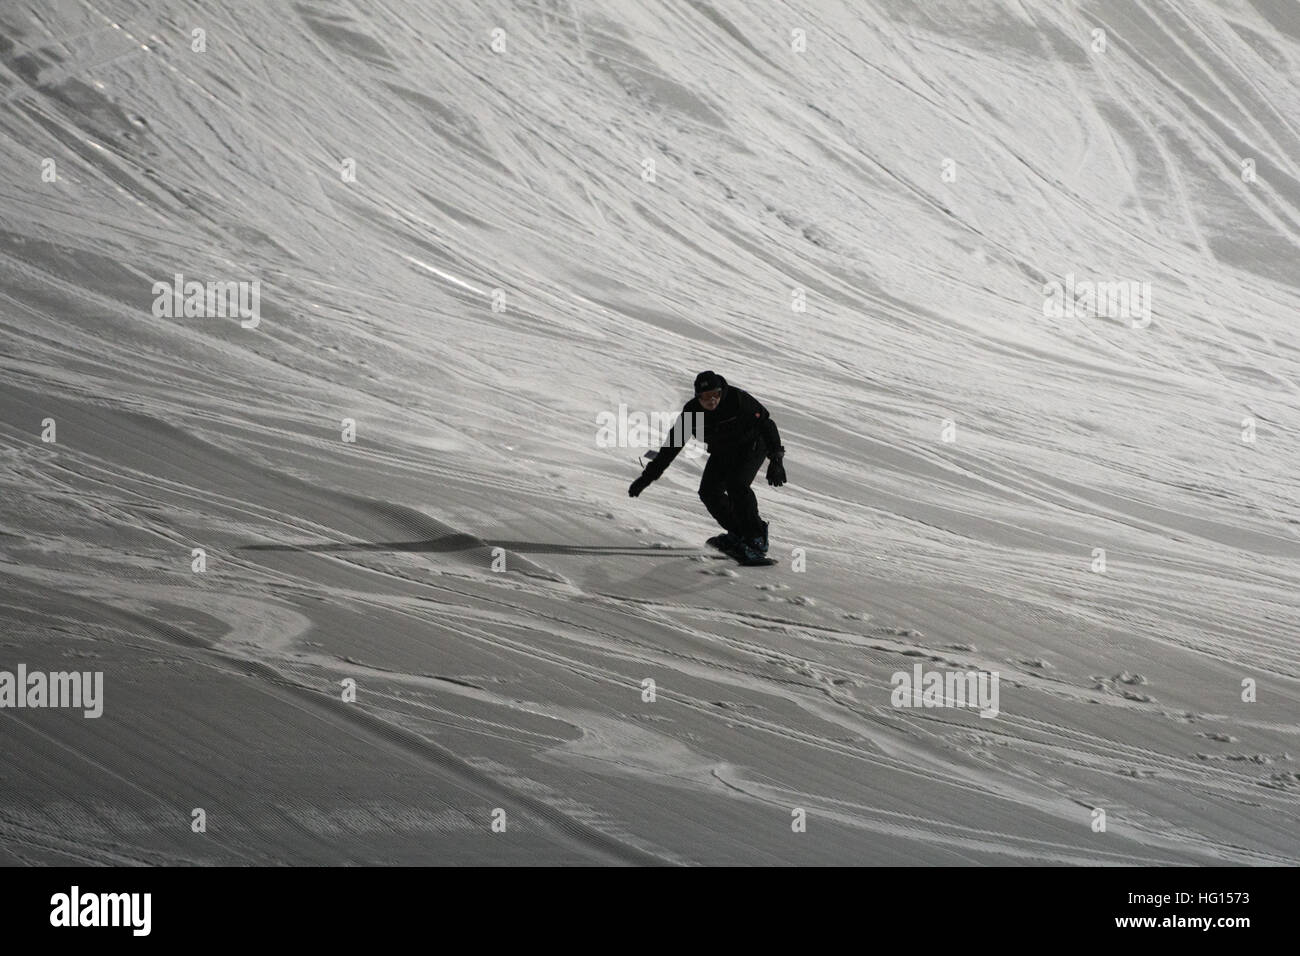 St.Englmar, Germany. 03rd Jan, 2017. A snowboarder can be seen on a ski slope in Gruen near St.Englmar, Germany, - Stock Image